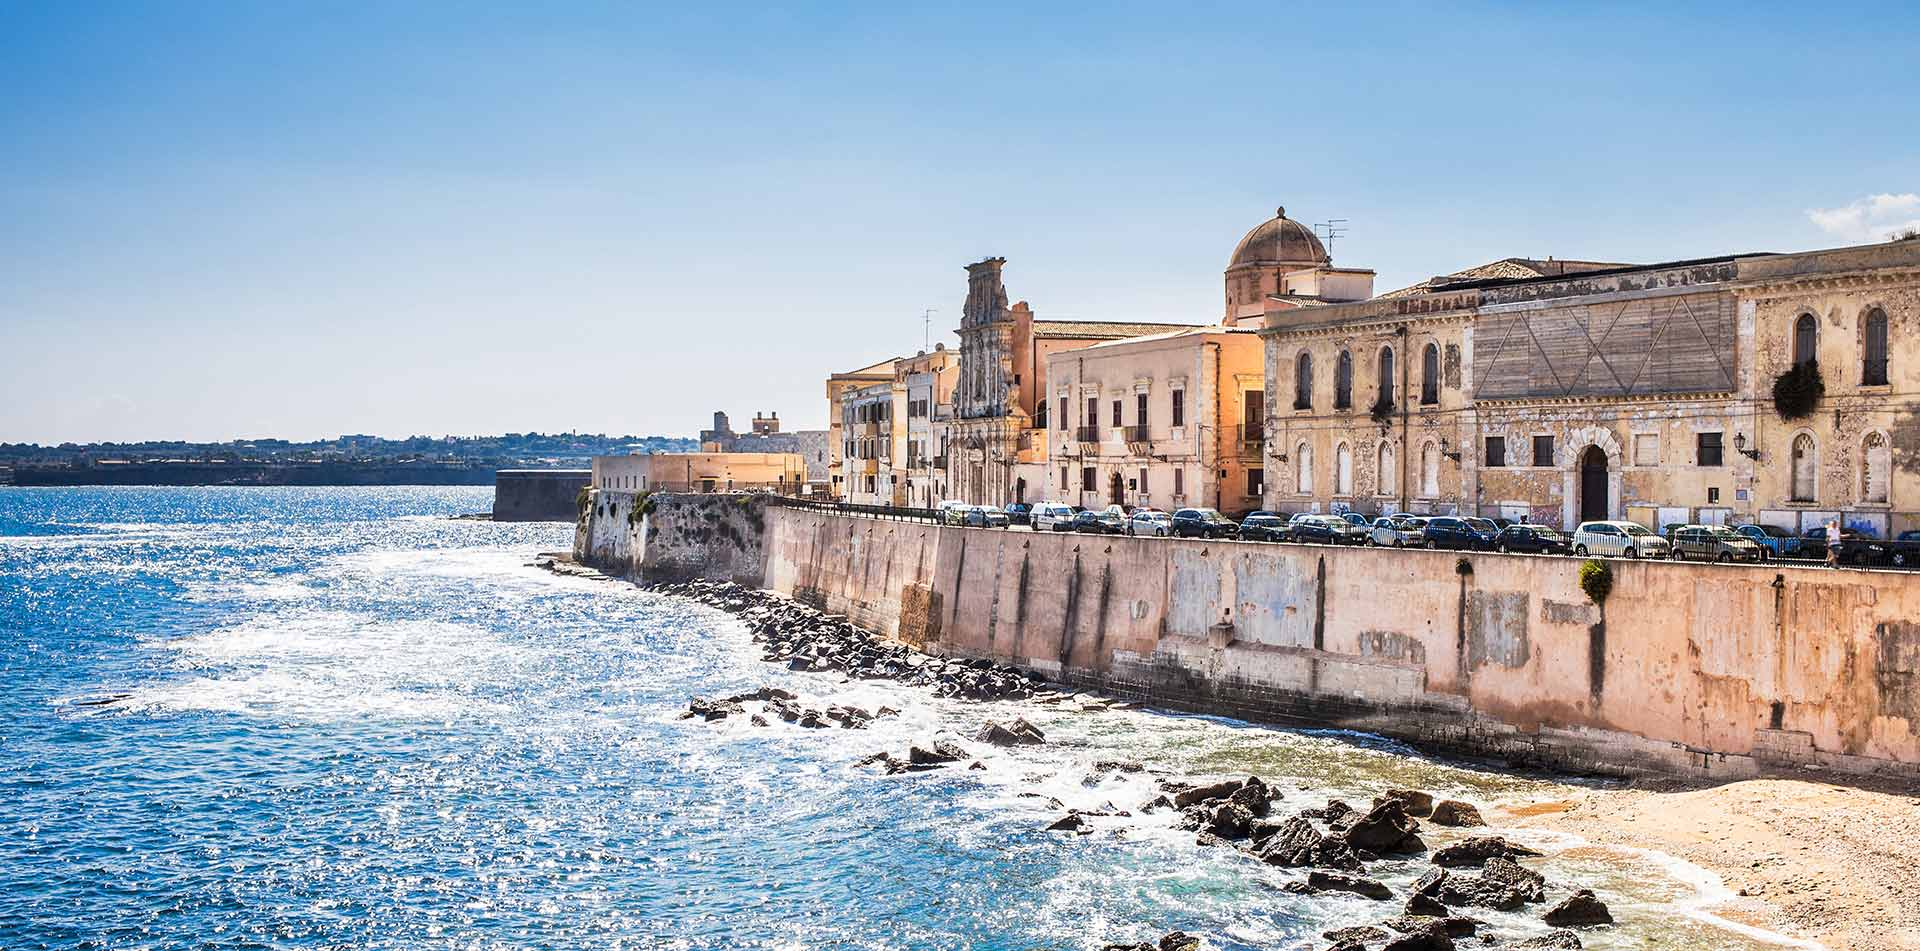 Europe Italy Sicily Siracusa old buildings along coastal sea wall at daytime - luxury vacation destinations